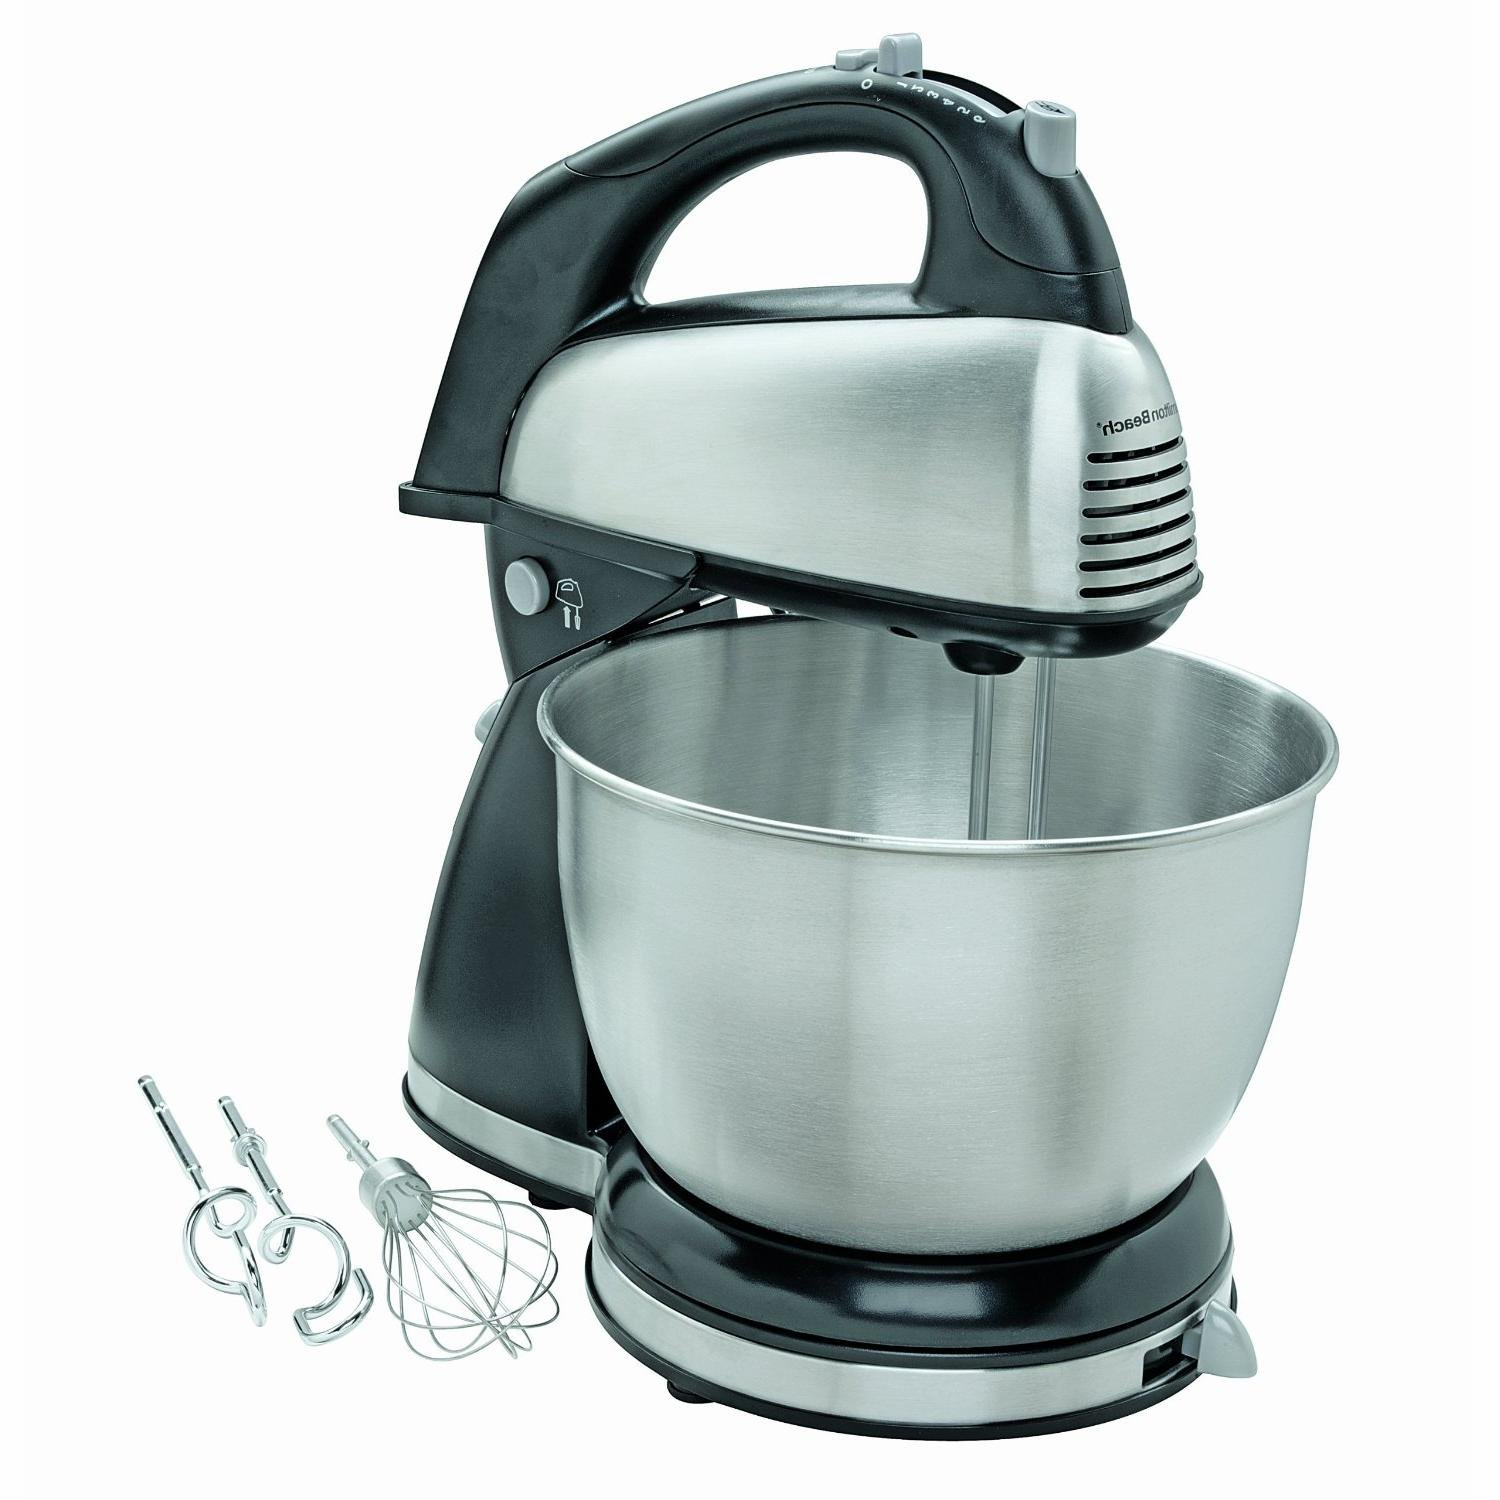 Best Mixer.6-Speed Classic Stand Mixer, Stainless Steel.Cake Mixer.Cooks Professional Stand Mixer.Kitchen Mixers.